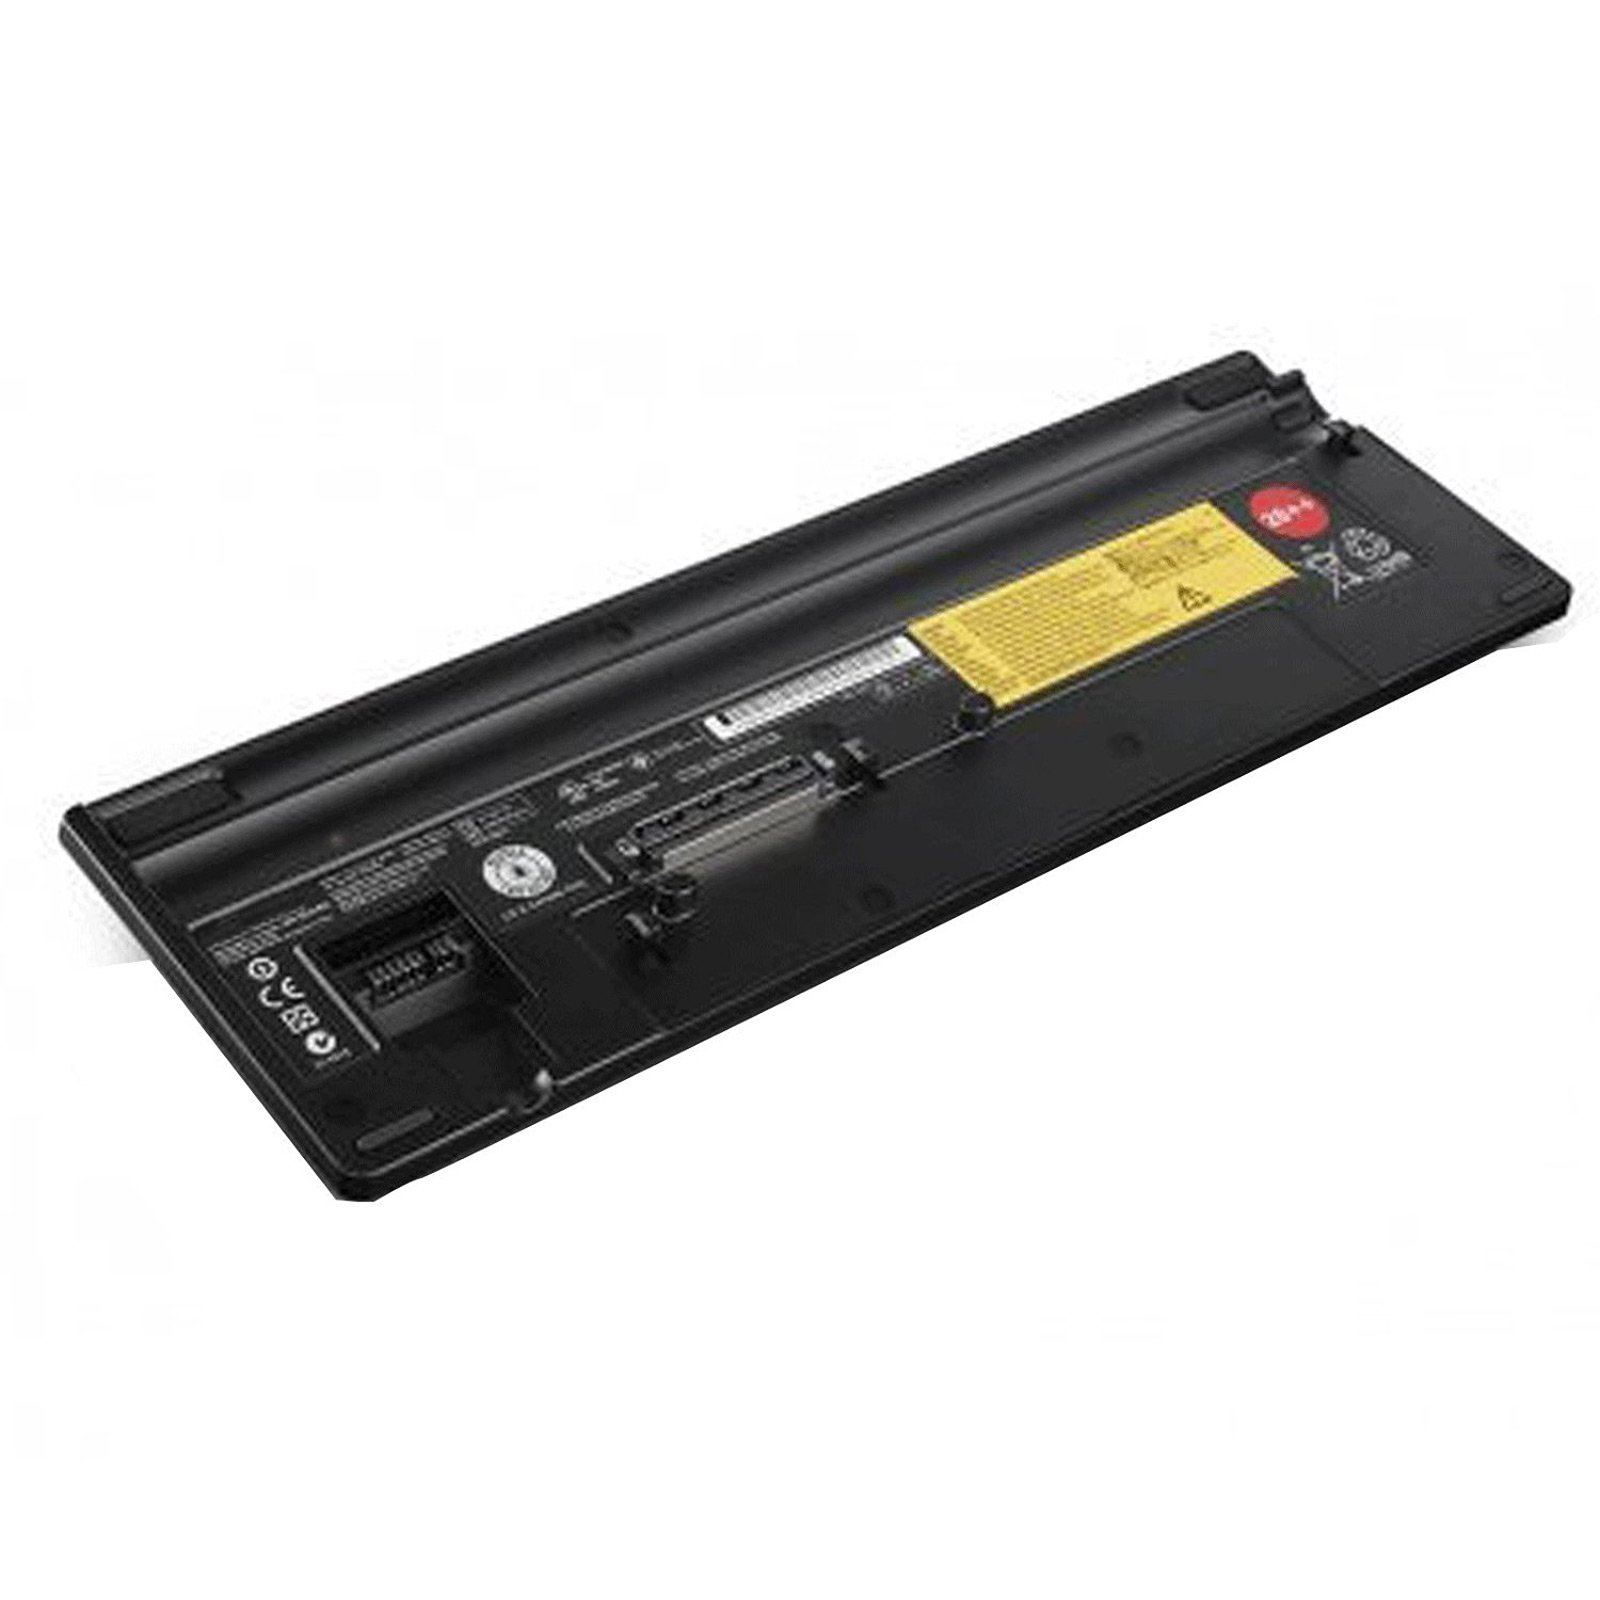 Dentsing 9 Cell Slice 28++ Add -On Battery for ThinkPad Models T410/T510/W510/T420/T520/W520/T430/T530/W530 (0A36304) by Dentsing (Image #3)